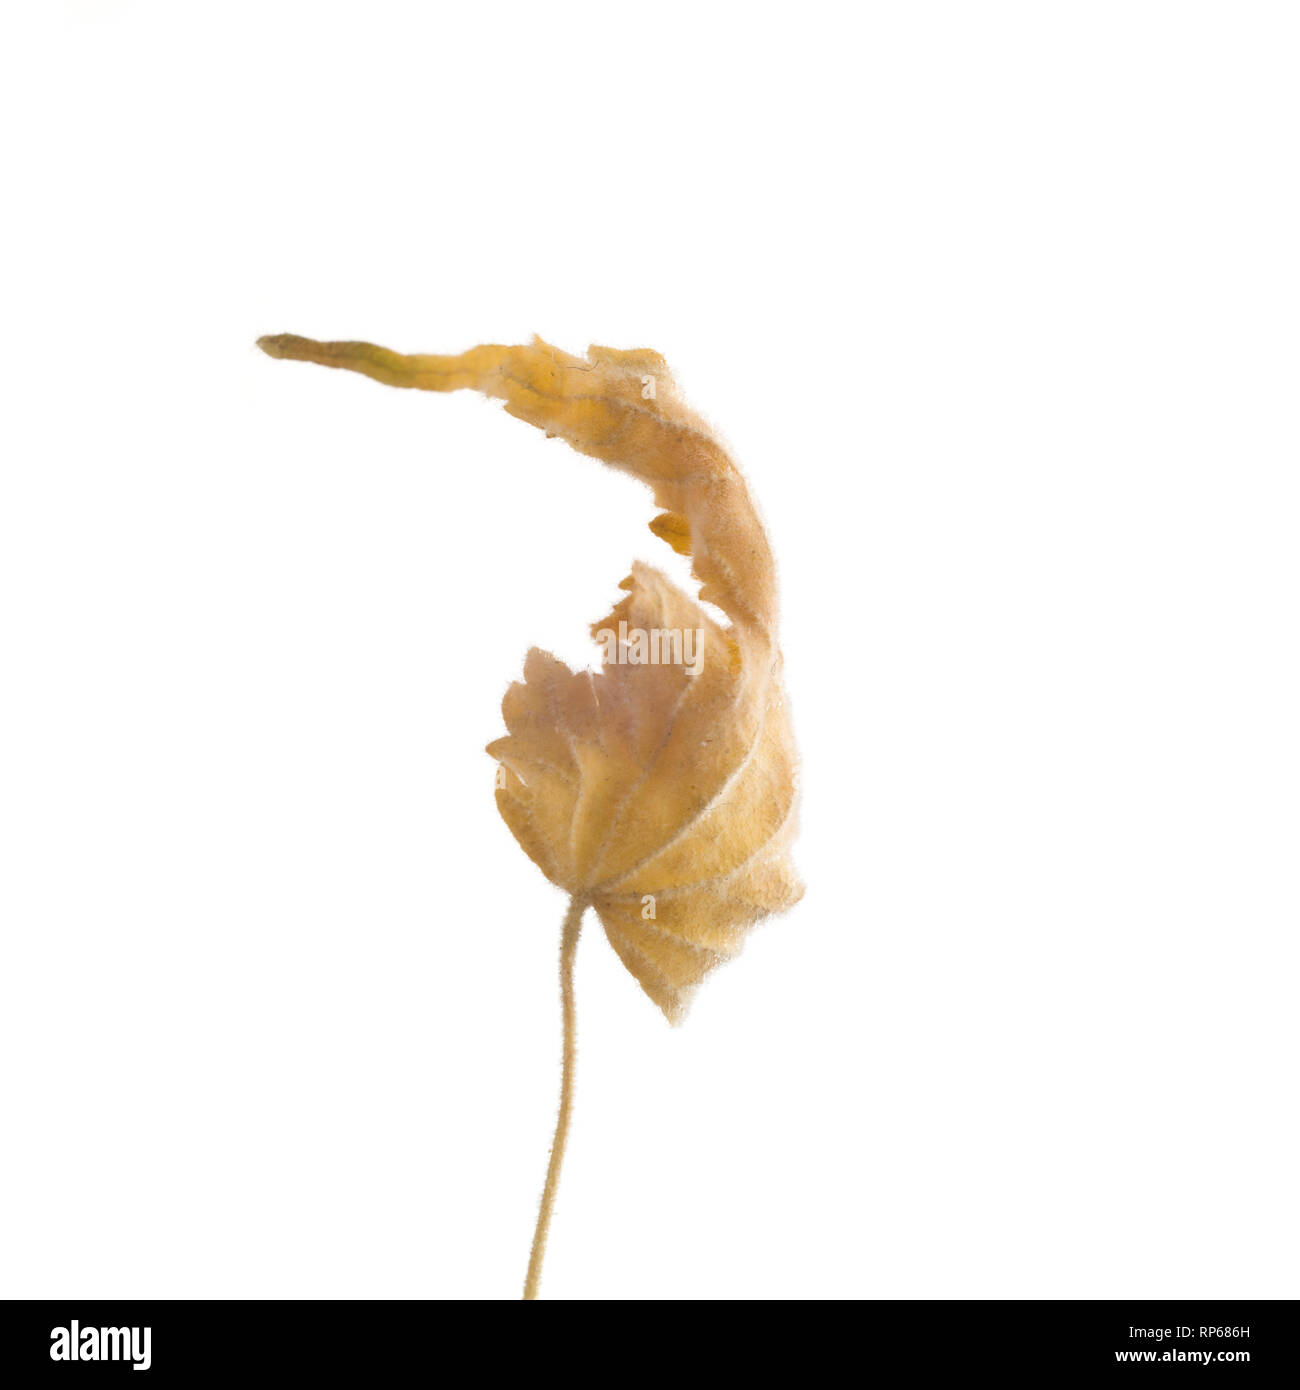 Dried Flowering Maple, Abutilon striatum thompsonii, Leaf against White Background XV - Stock Image